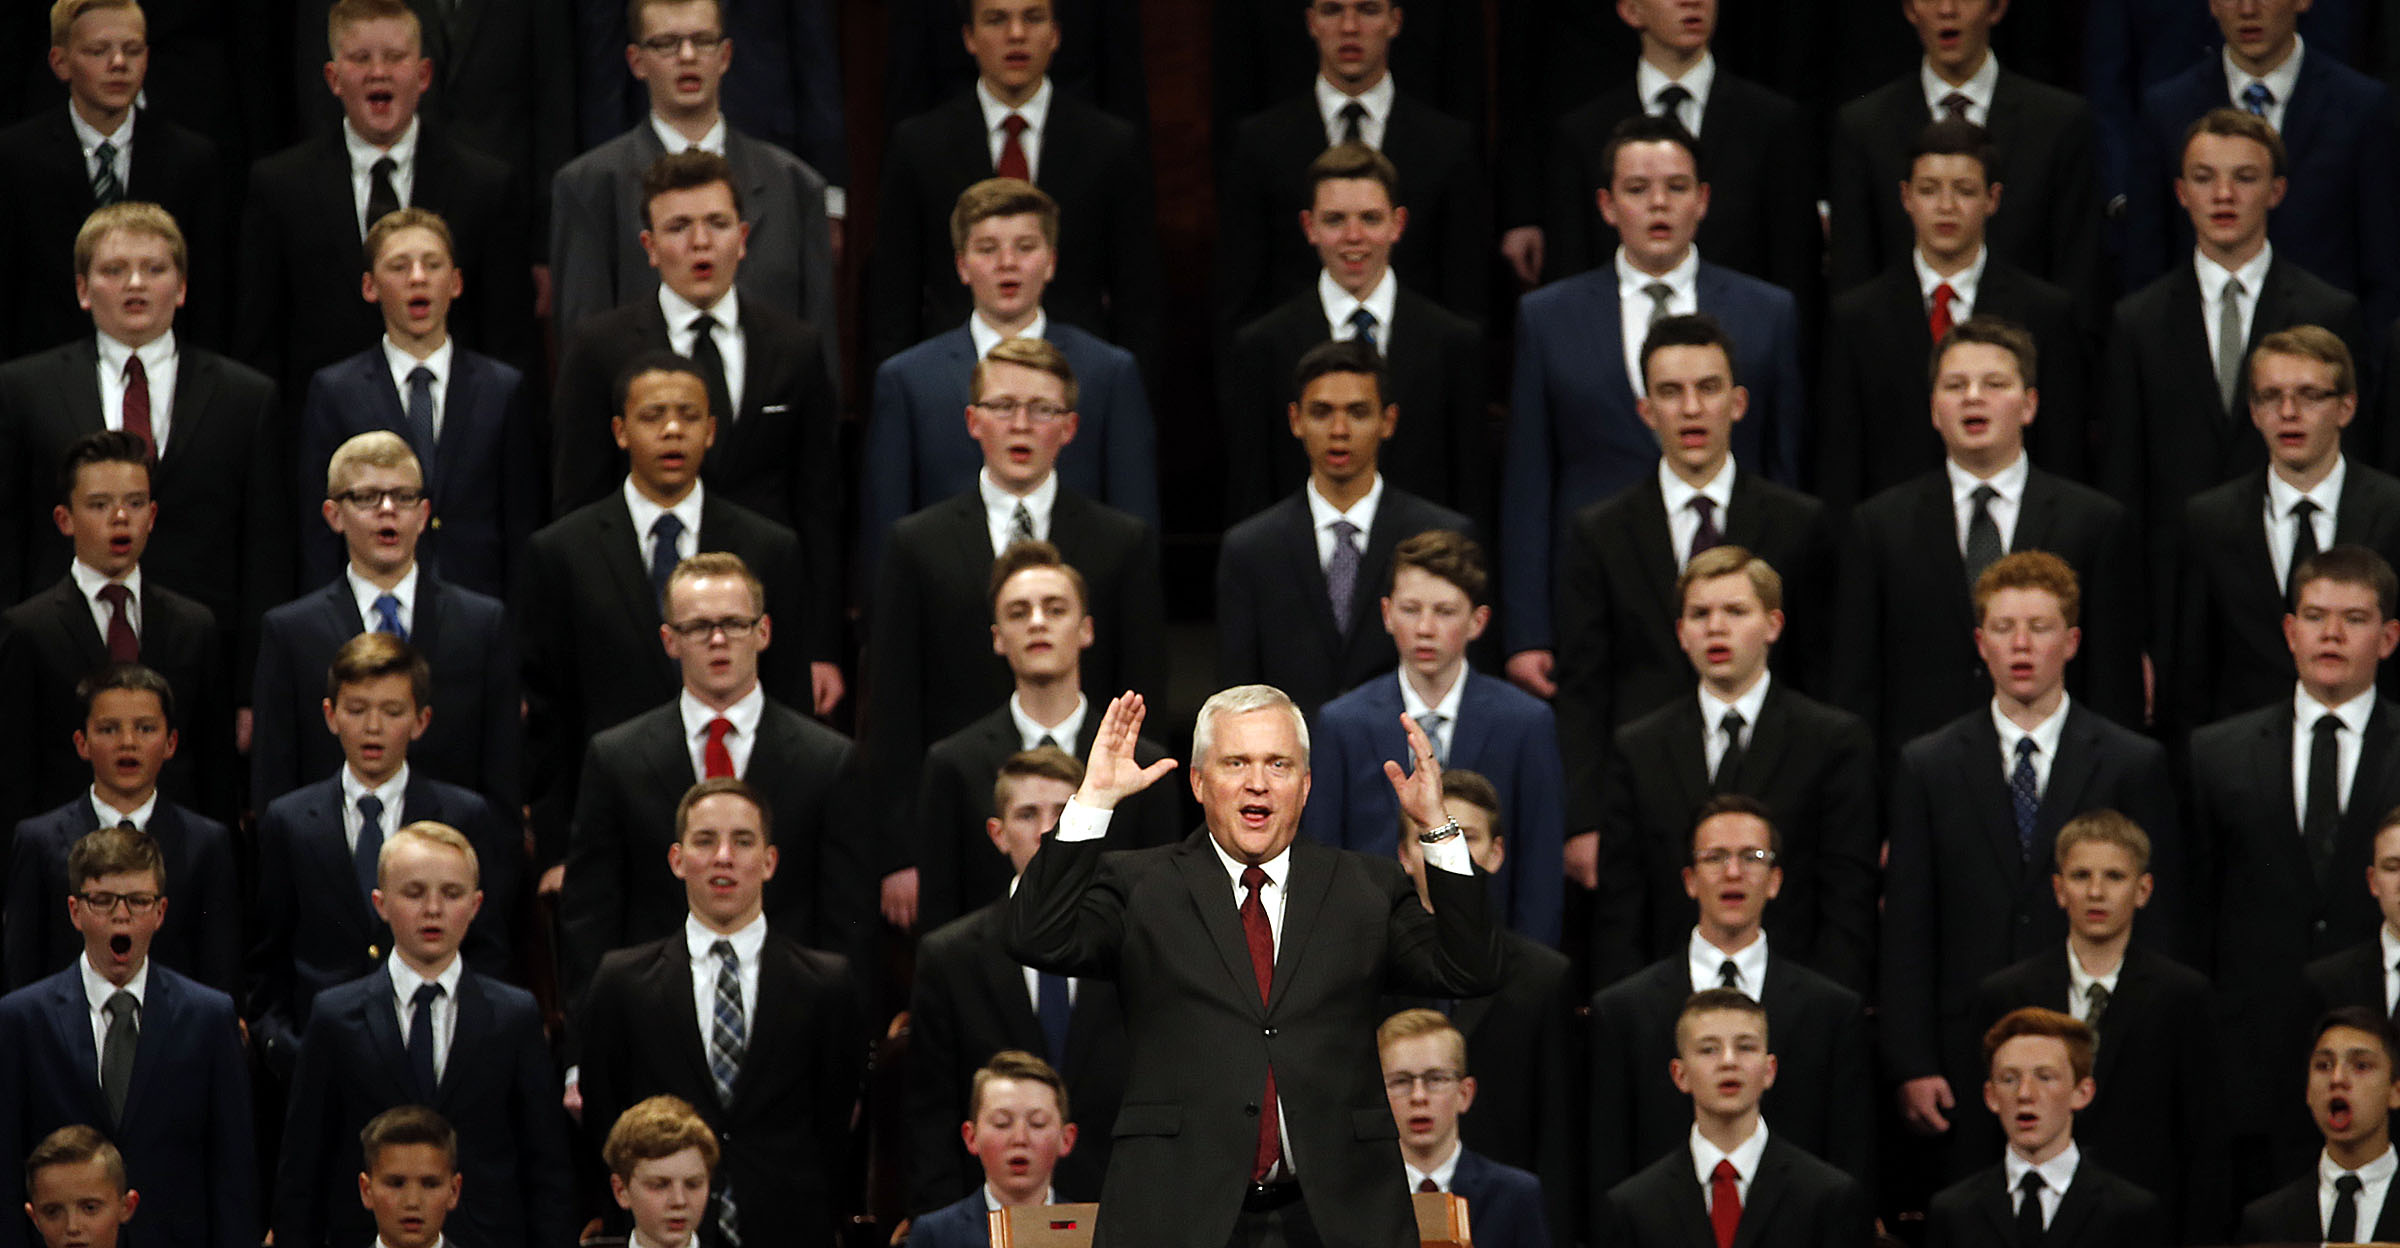 An Aaronic Priesthood choir from stakes in Layton, Utah, joins with the congregation in singing during the priesthood session of the 189th Annual General Conference of The Church of Jesus Christ of Latter-day Saints in the Conference Center in Salt Lake City on Saturday, April 6, 2019.